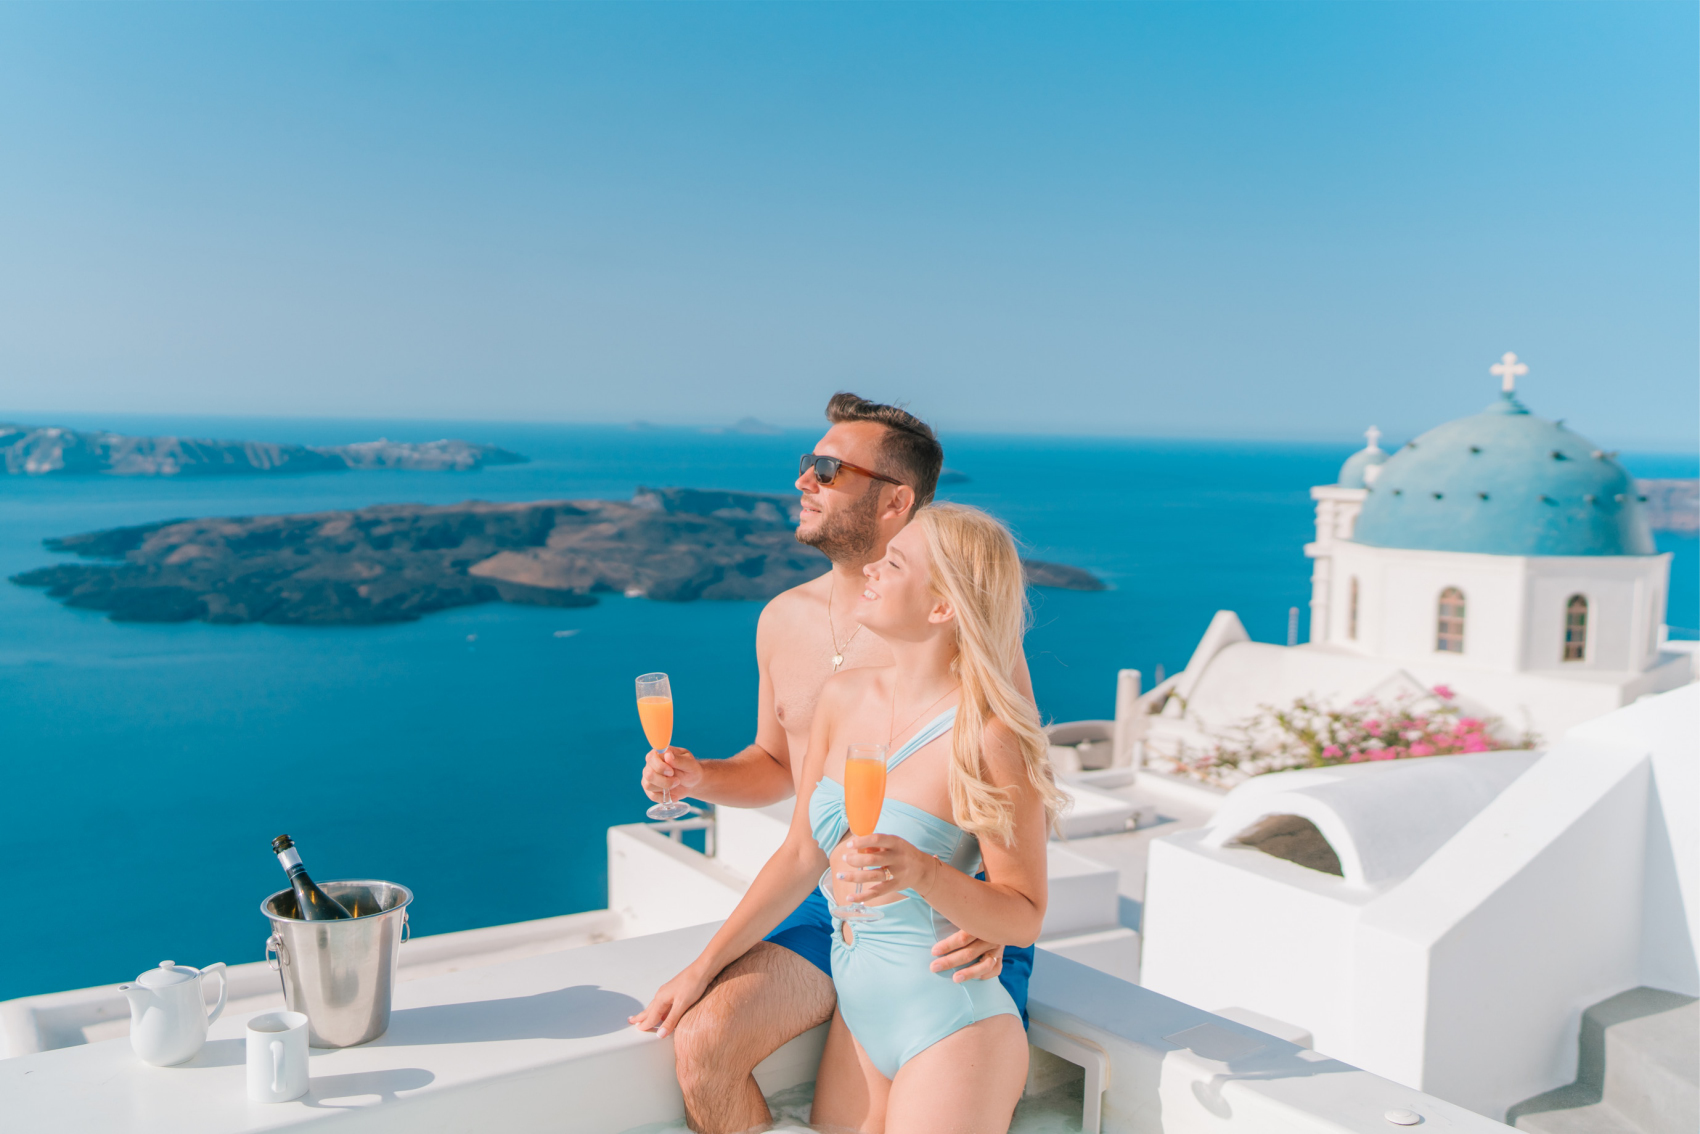 Instagram Influencer travel couple Gets Married in Greece drinking mimosas in Santorini